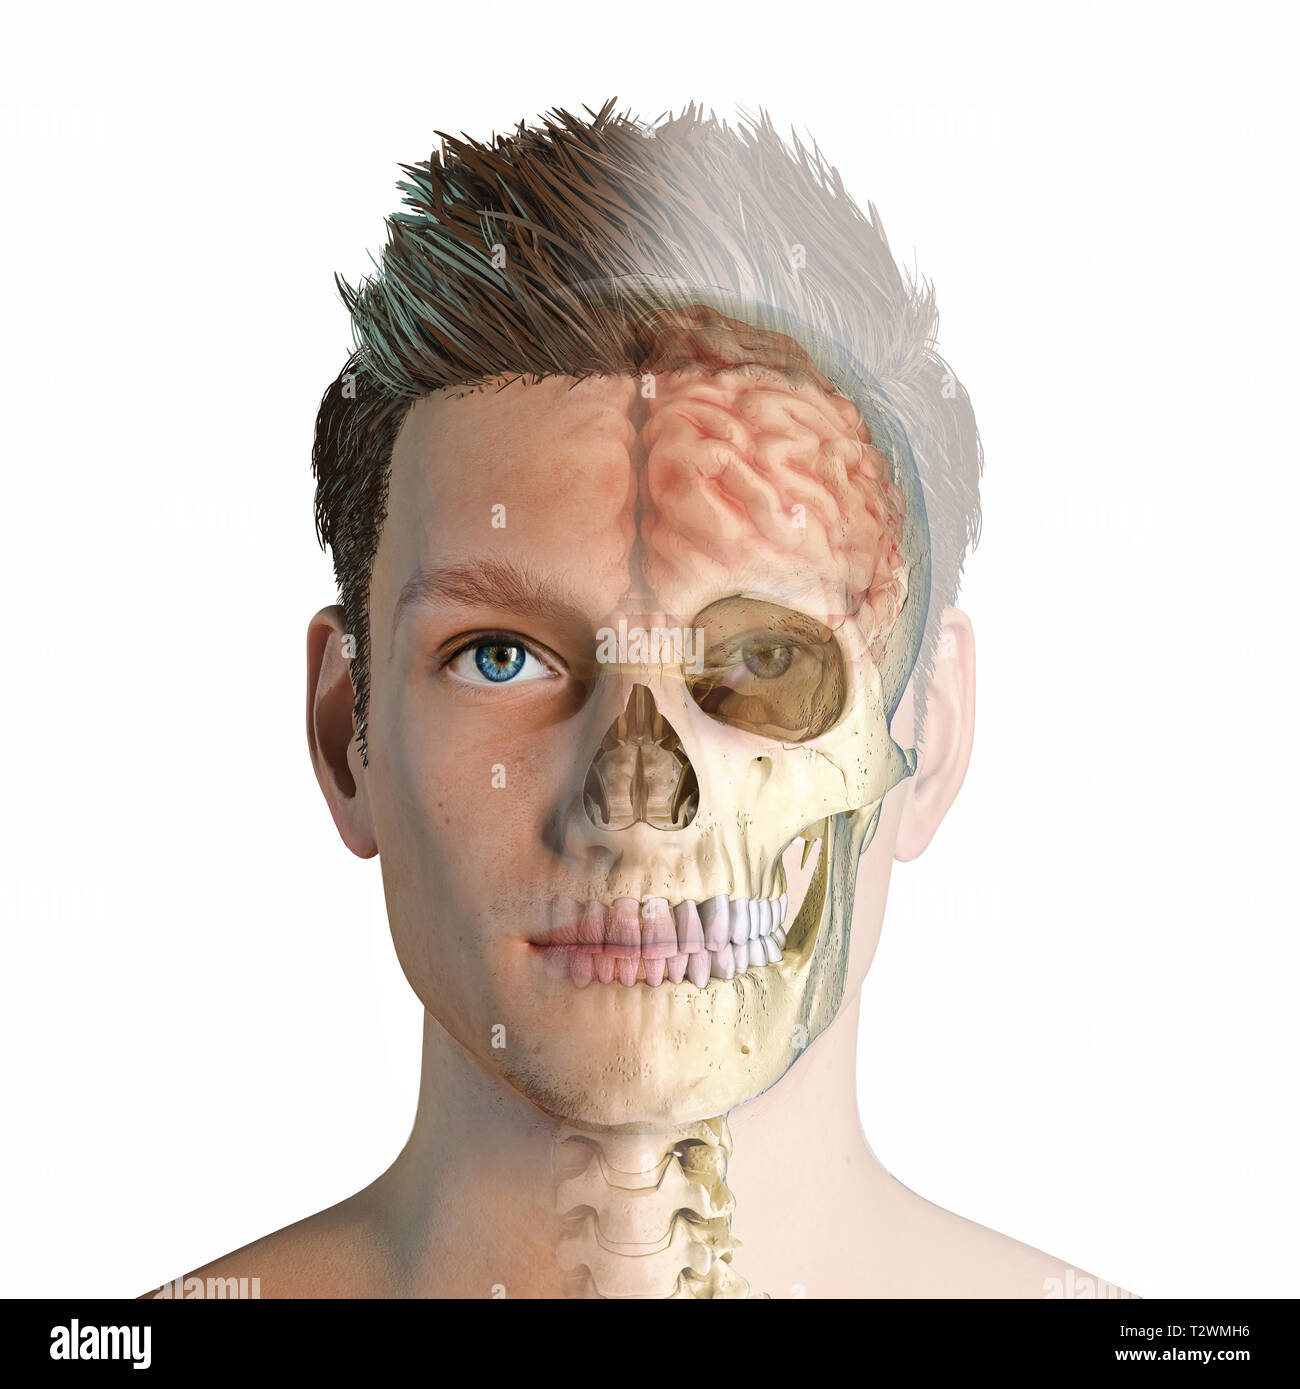 Man head with skull and brain ghosted. Front view, half face and half skull/brain on white background. Anatomy image. - Stock Image